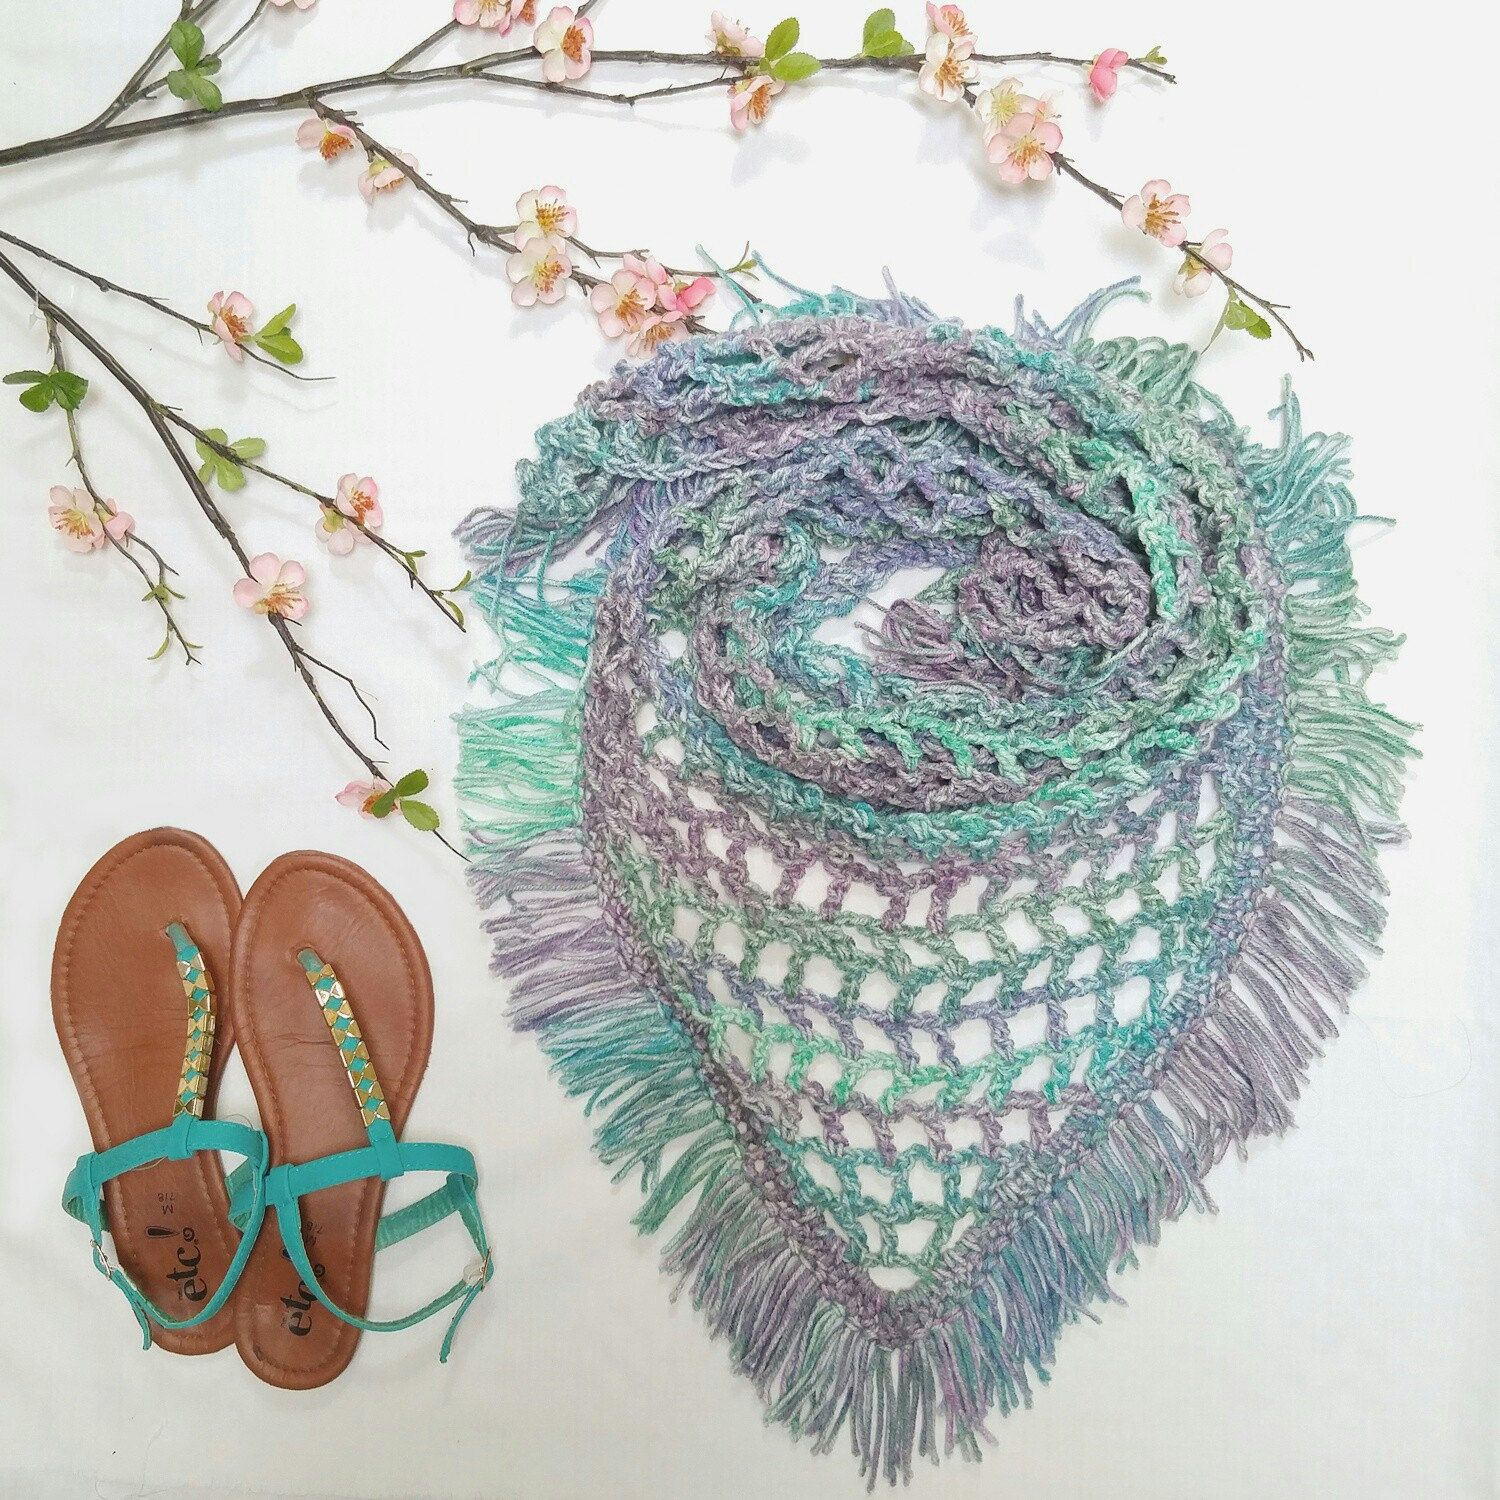 Dreaming of Spring in this flatlay of my latest item up in my Etsy shop! ♥ #etsy #crochet #fringe